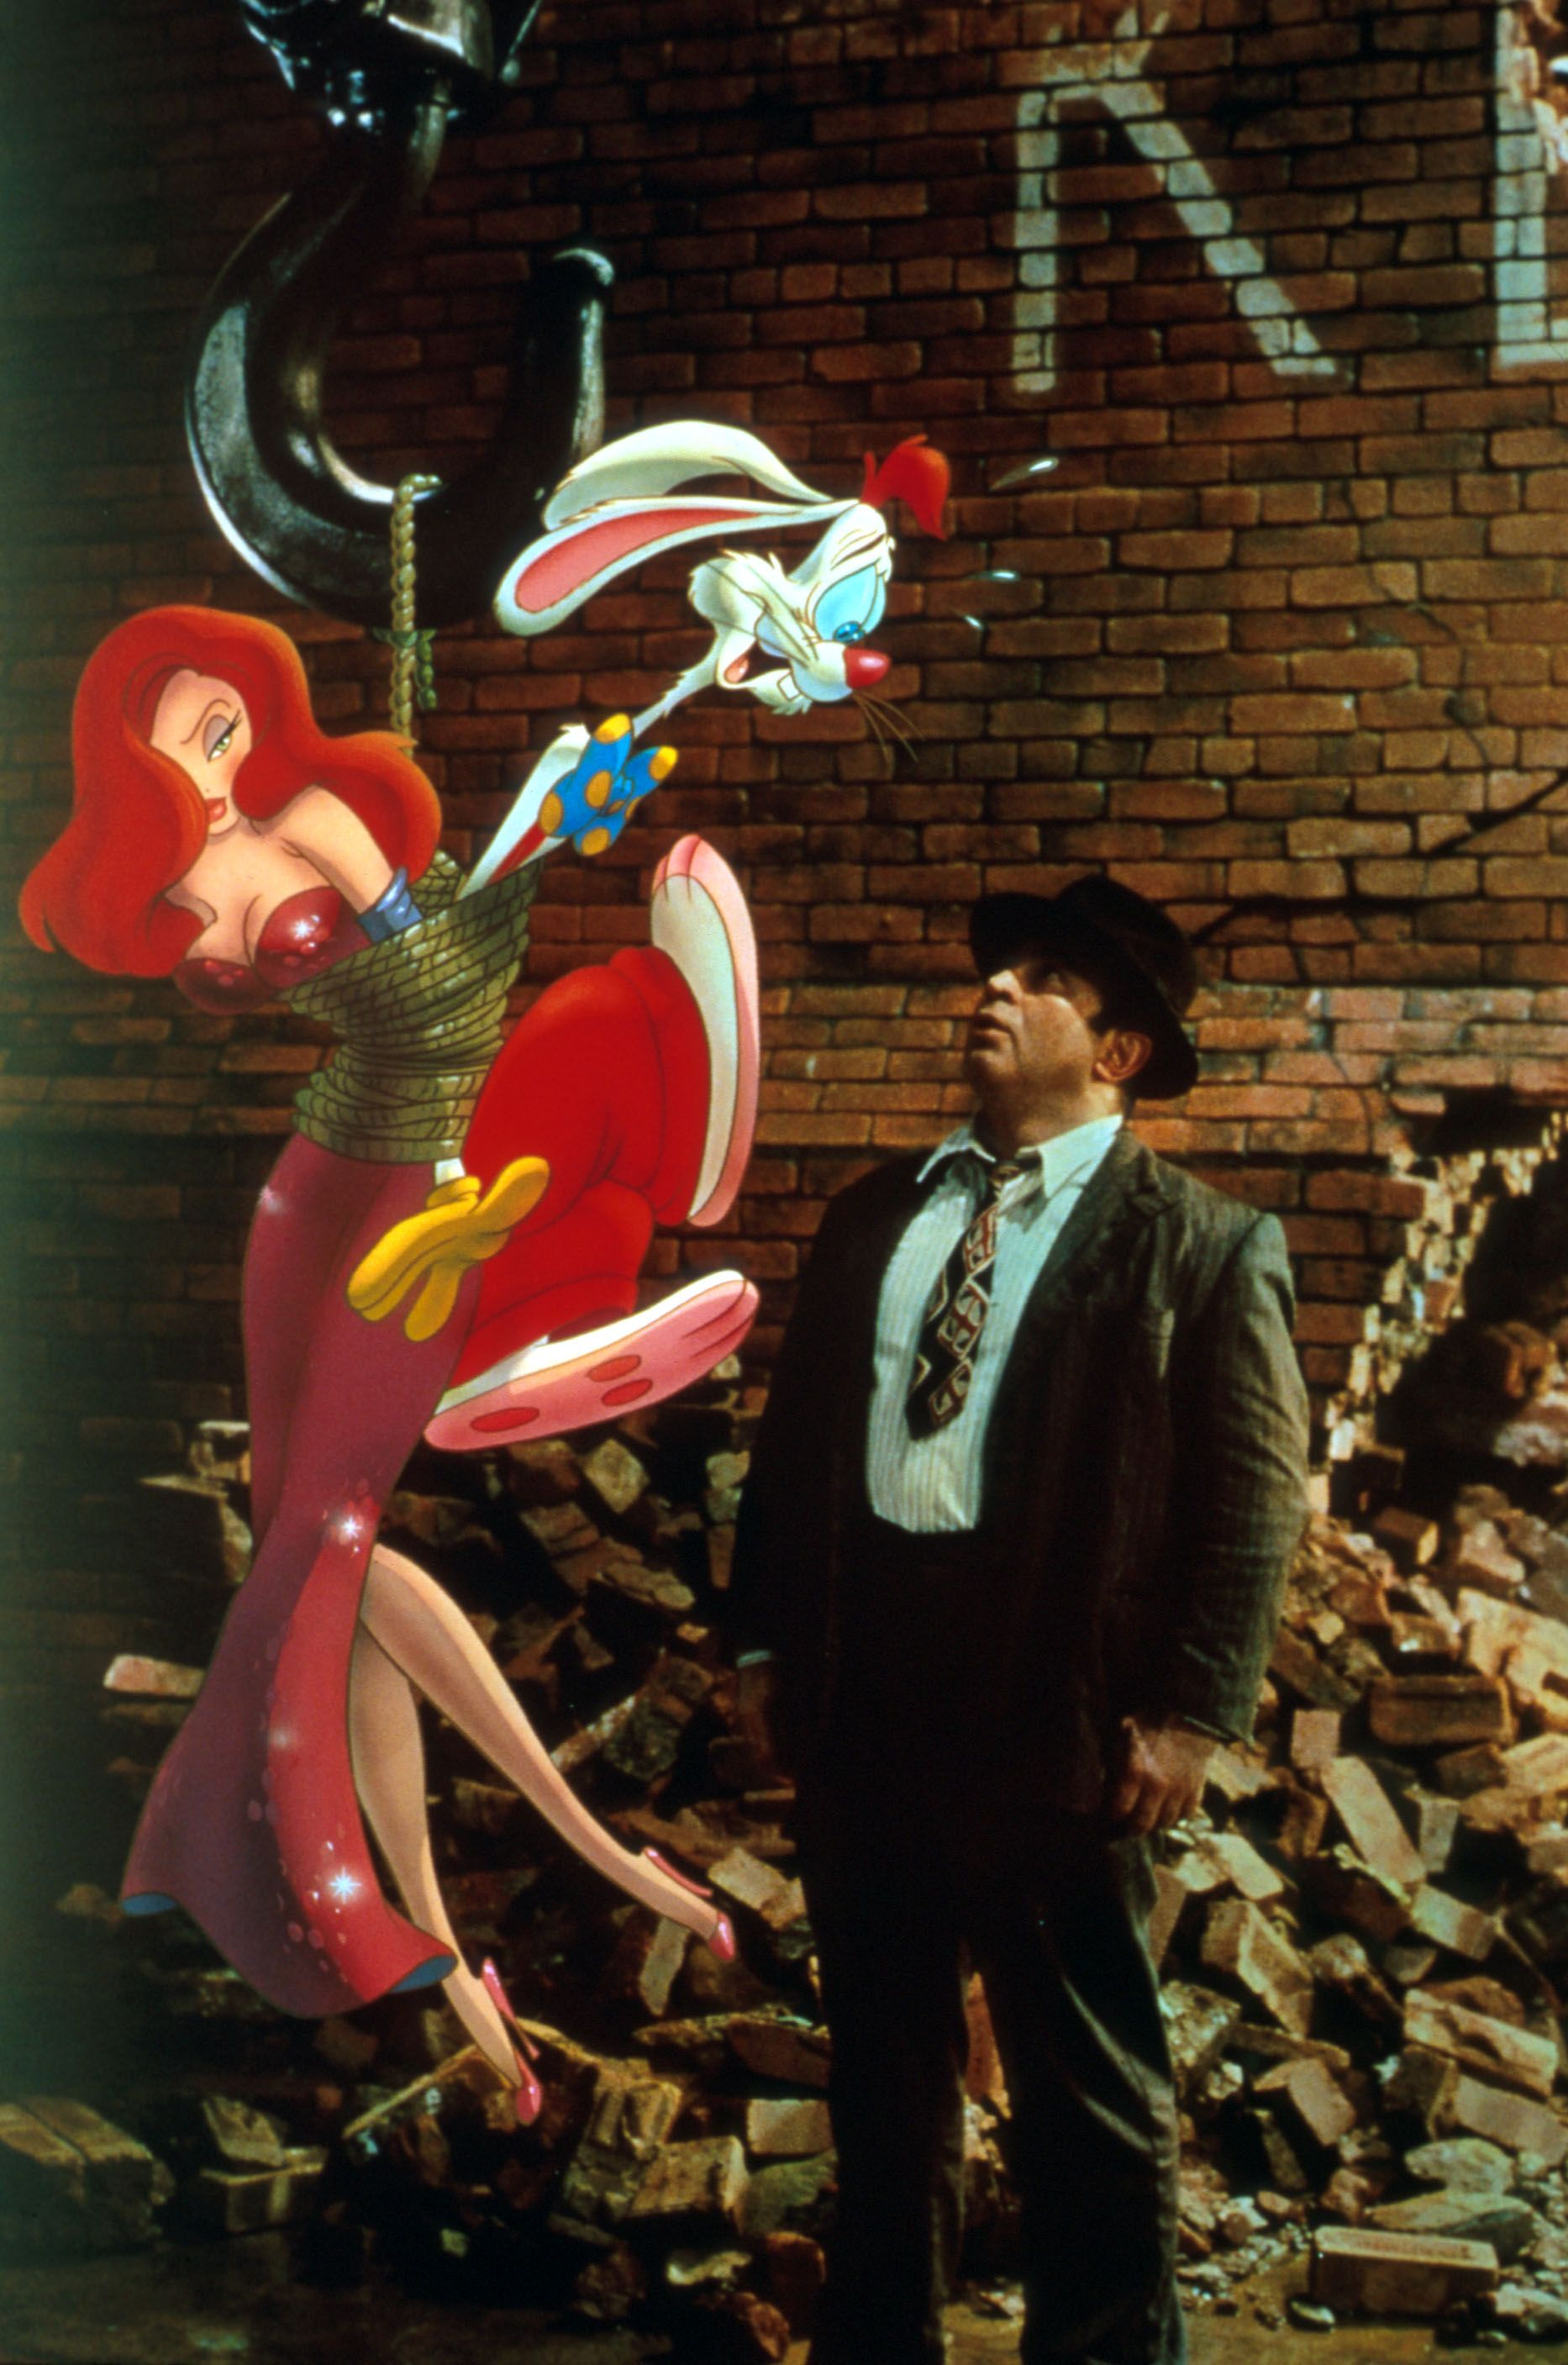 Wallpaper Smartphone Anime Roger Rabbit Wallpapers High Quality Download Free